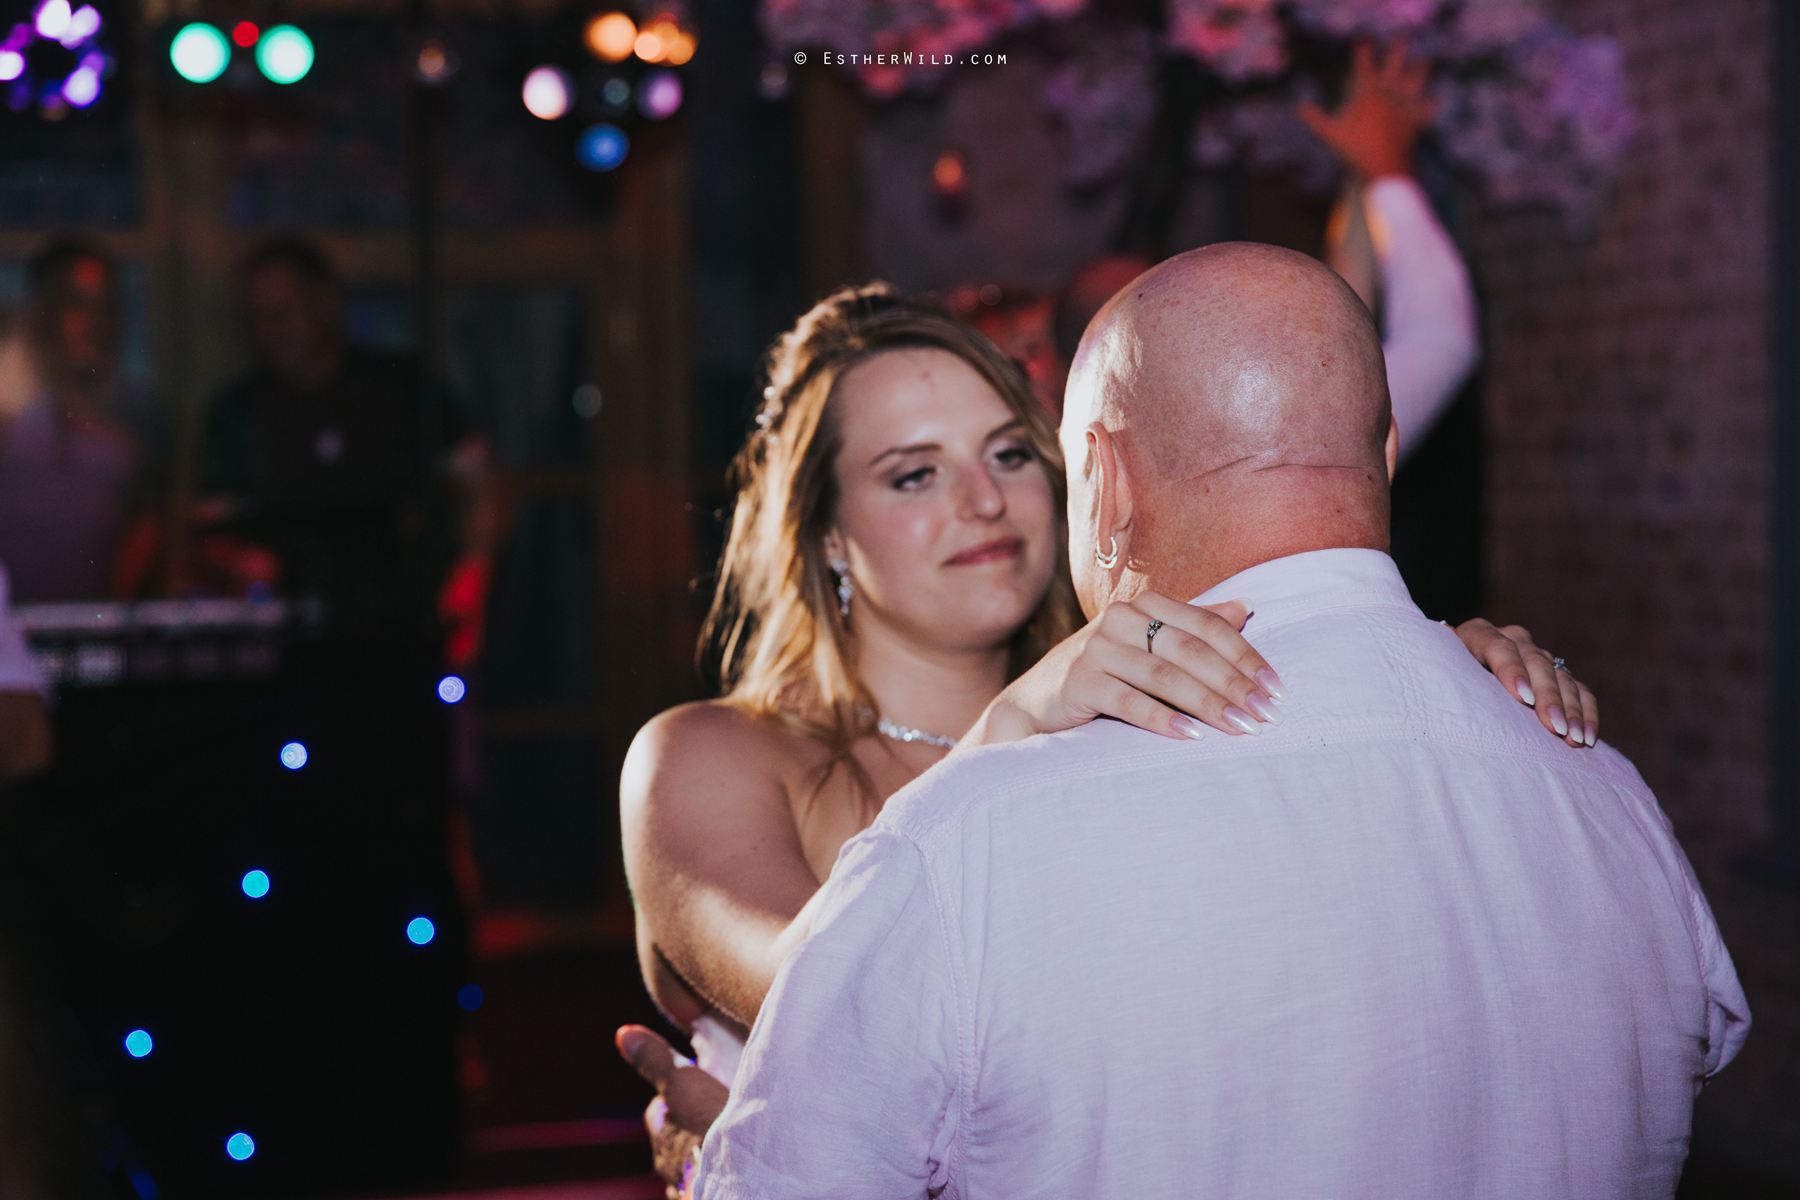 Kimberley_Hall_Wedding_Norfolk_Photography_Esther_Wild_IMG_2412.jpg